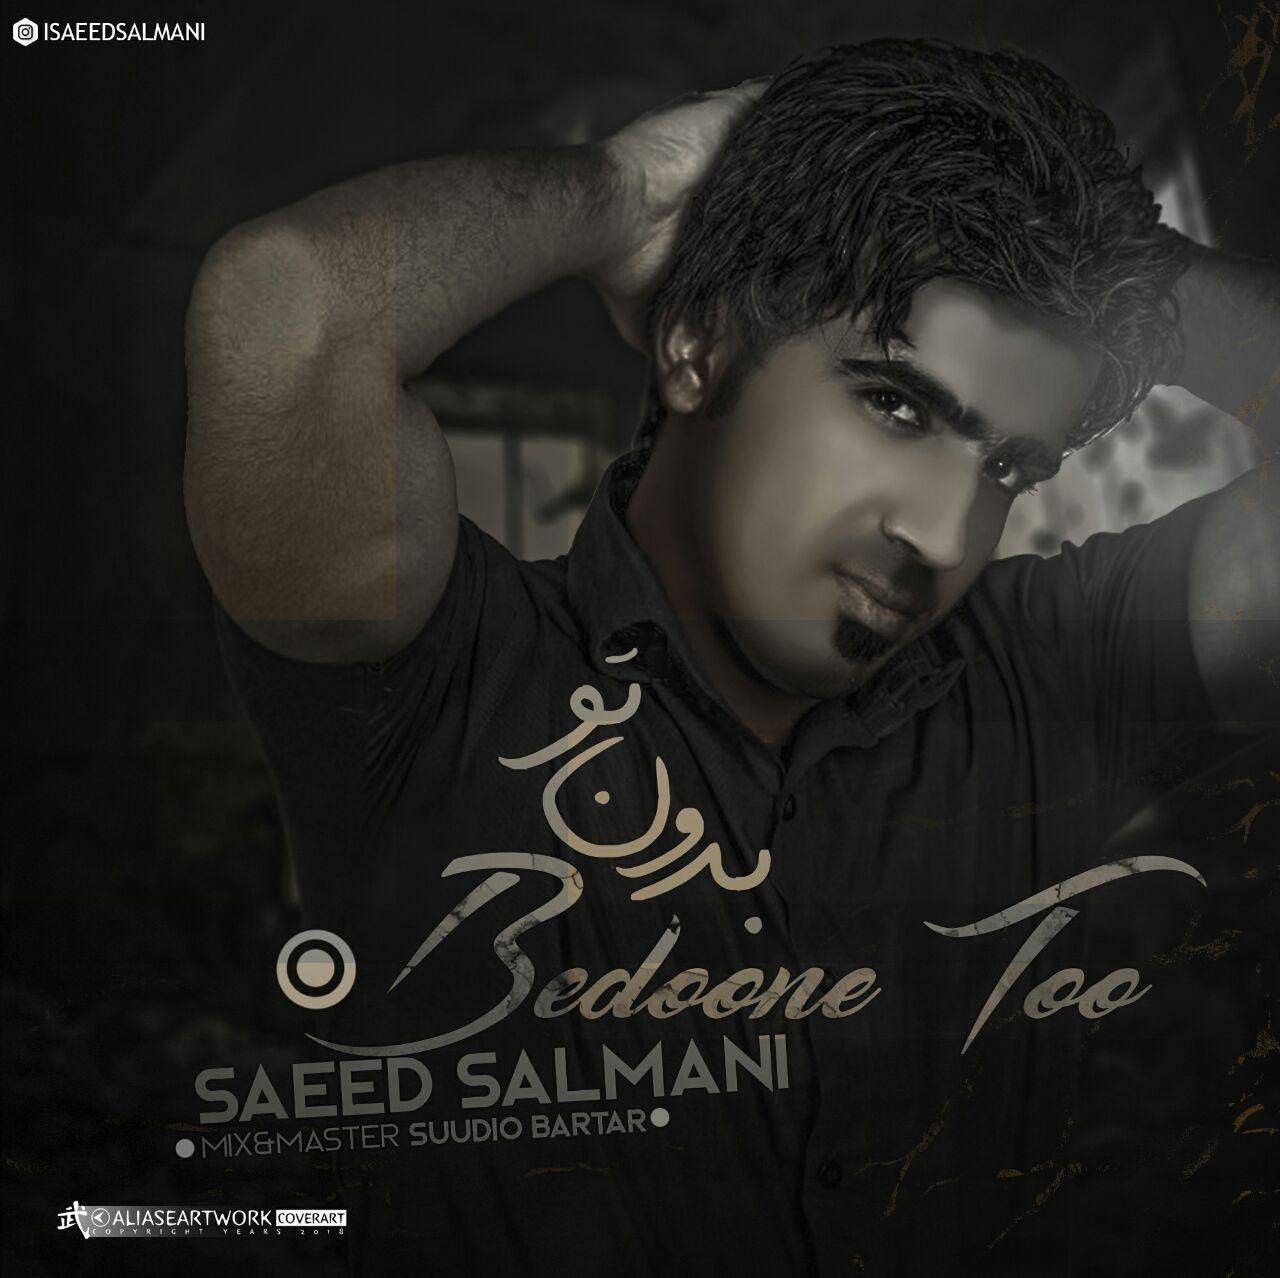 Saeed Salmani – Bedone To